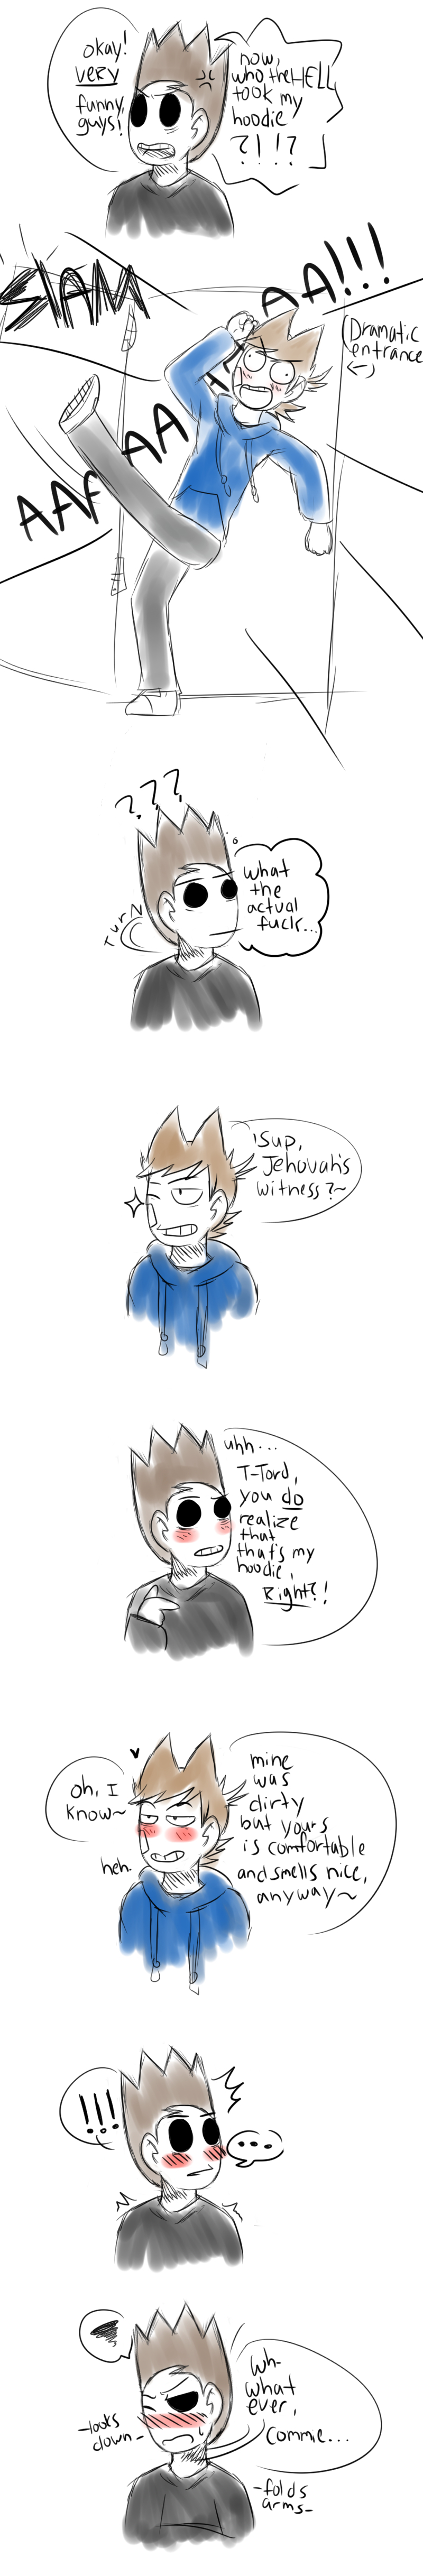 Eddsworld - TomTord comic by TimelessUniverse on DeviantArt